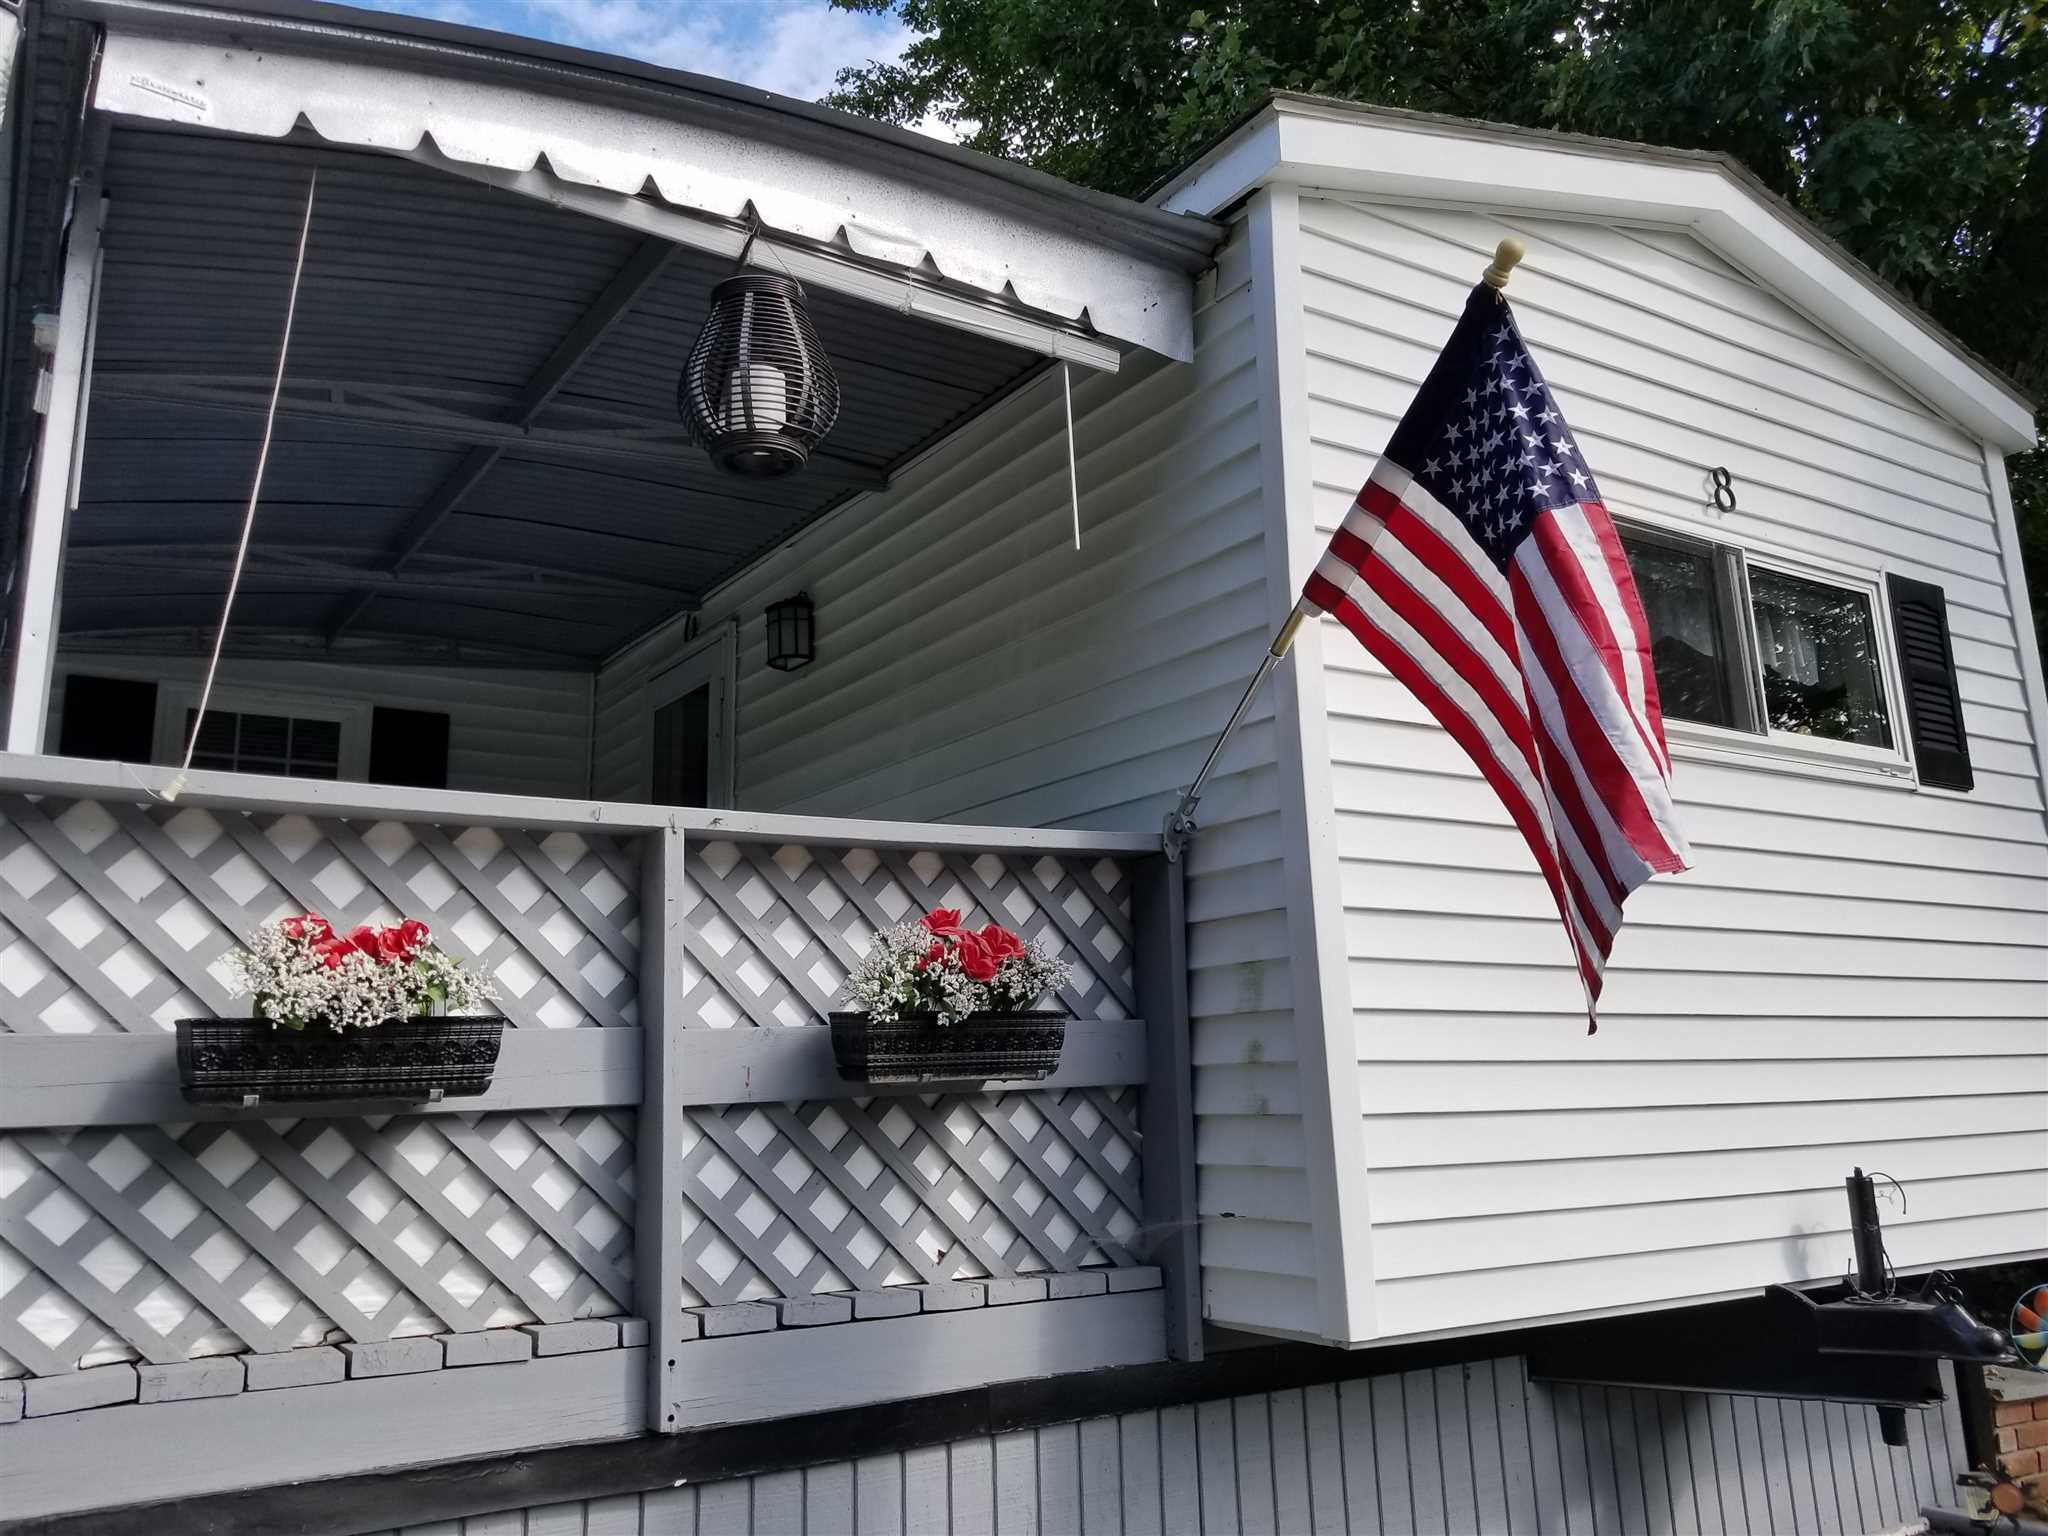 Single Family Home for Sale at 8 SECOND STREET 8 SECOND STREET Cold Spring, New York 10516 United States